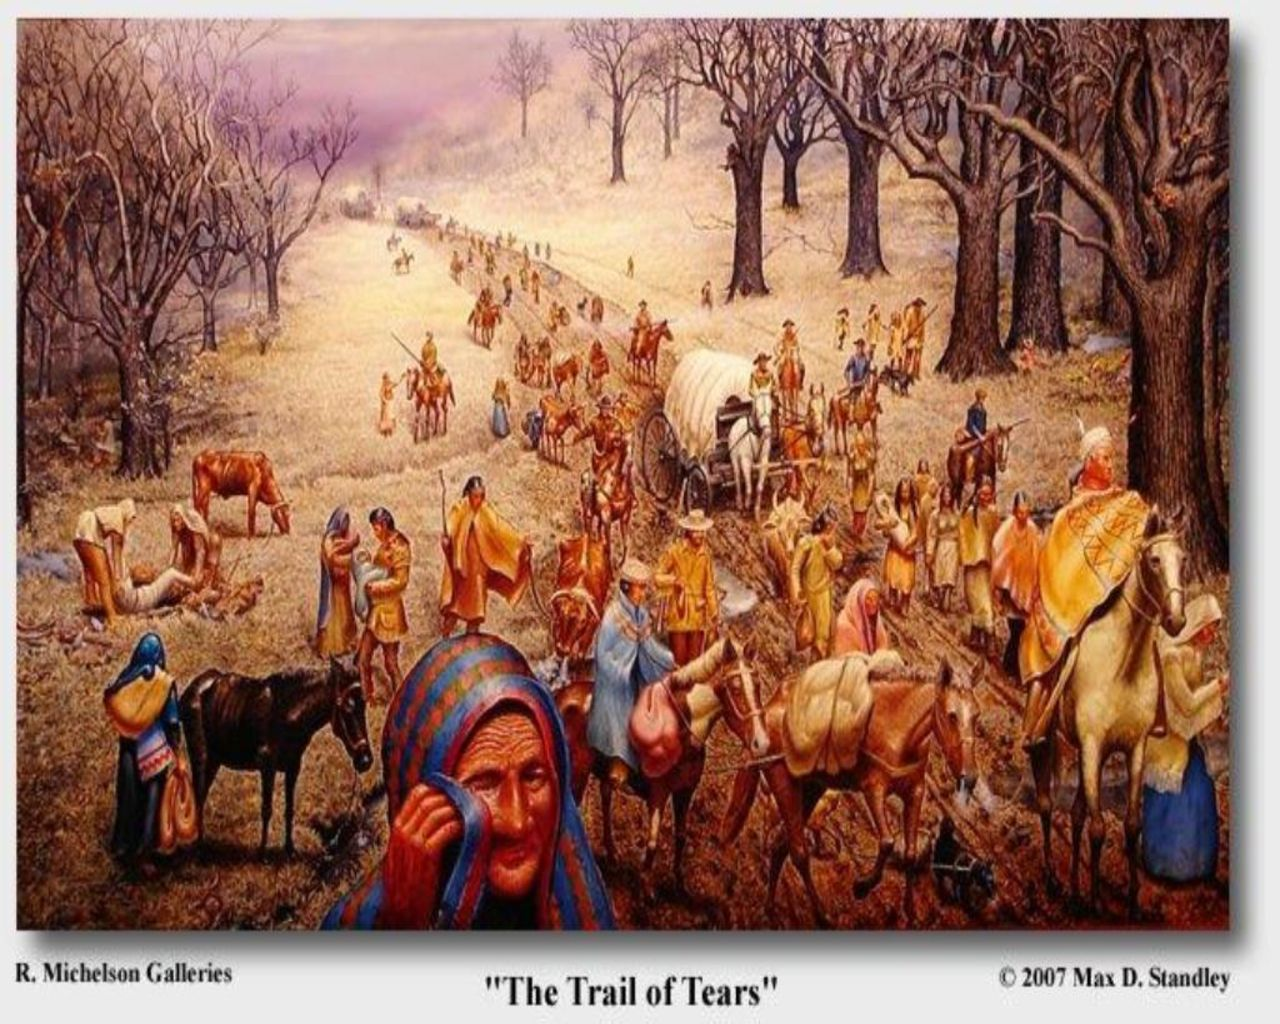 What were the impacts of the Trail of Tears?